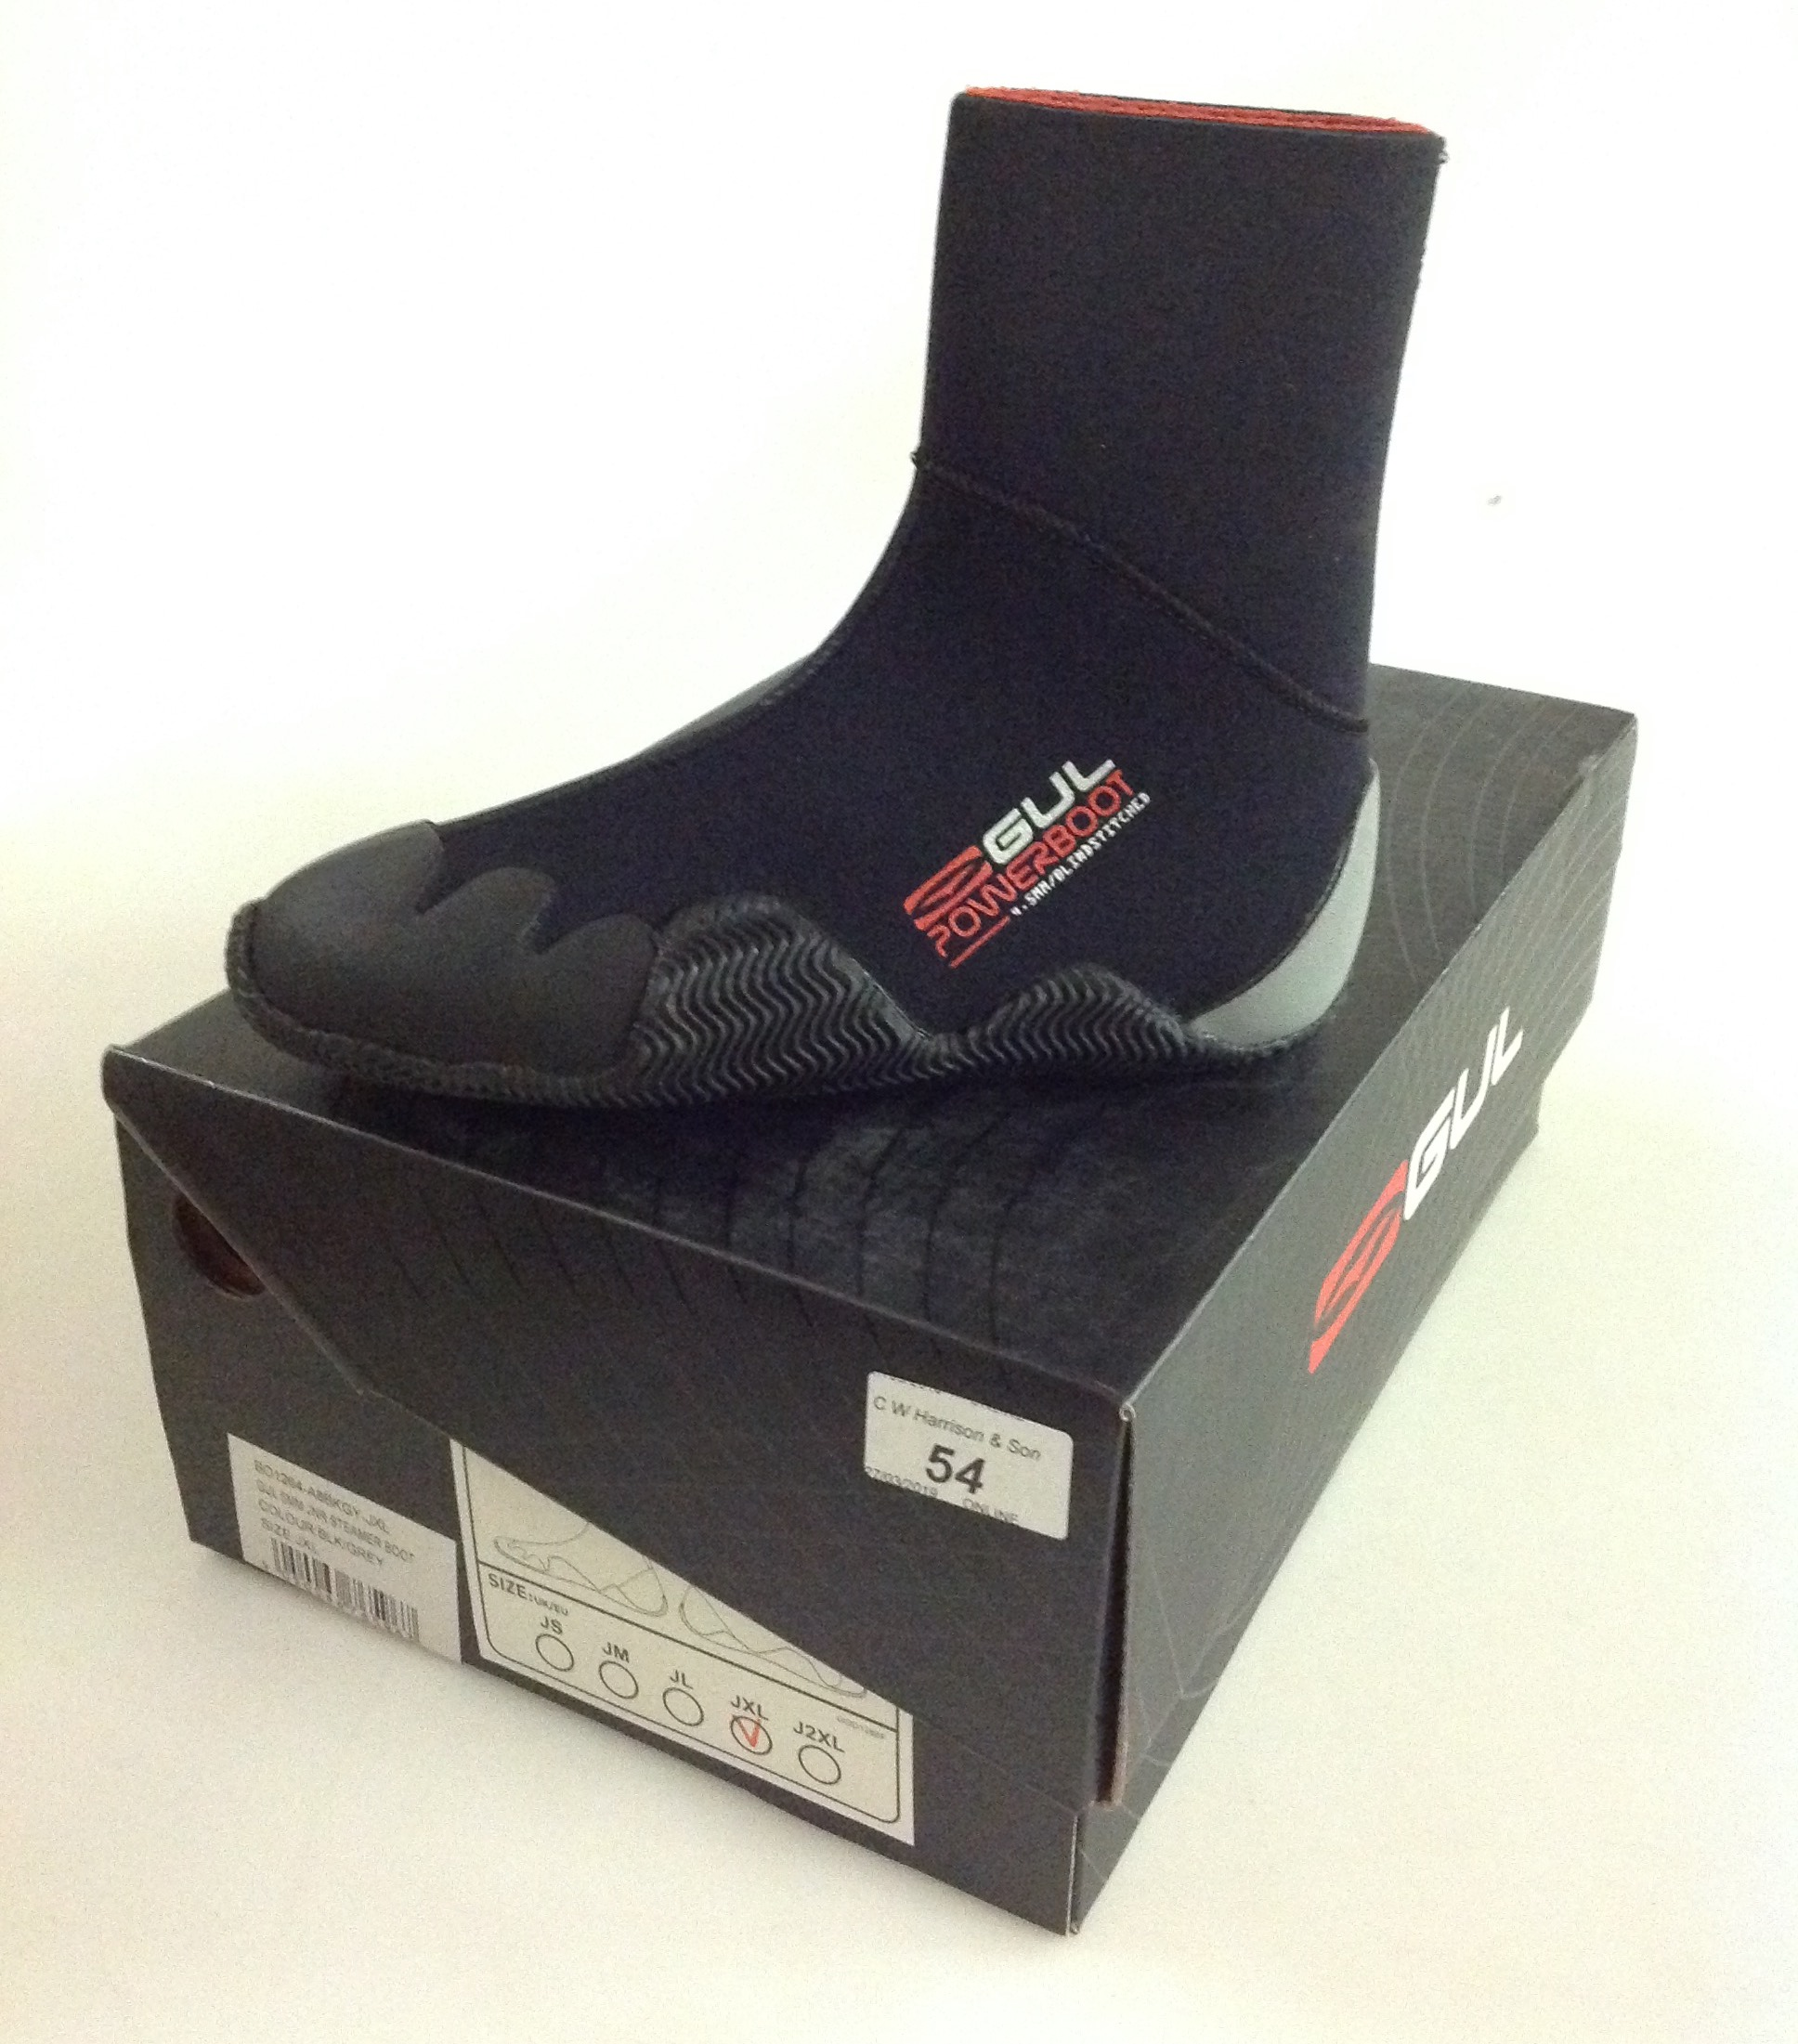 Lot 54 - Gul 5MM Jnr Steamer boot black and grey- size JXL